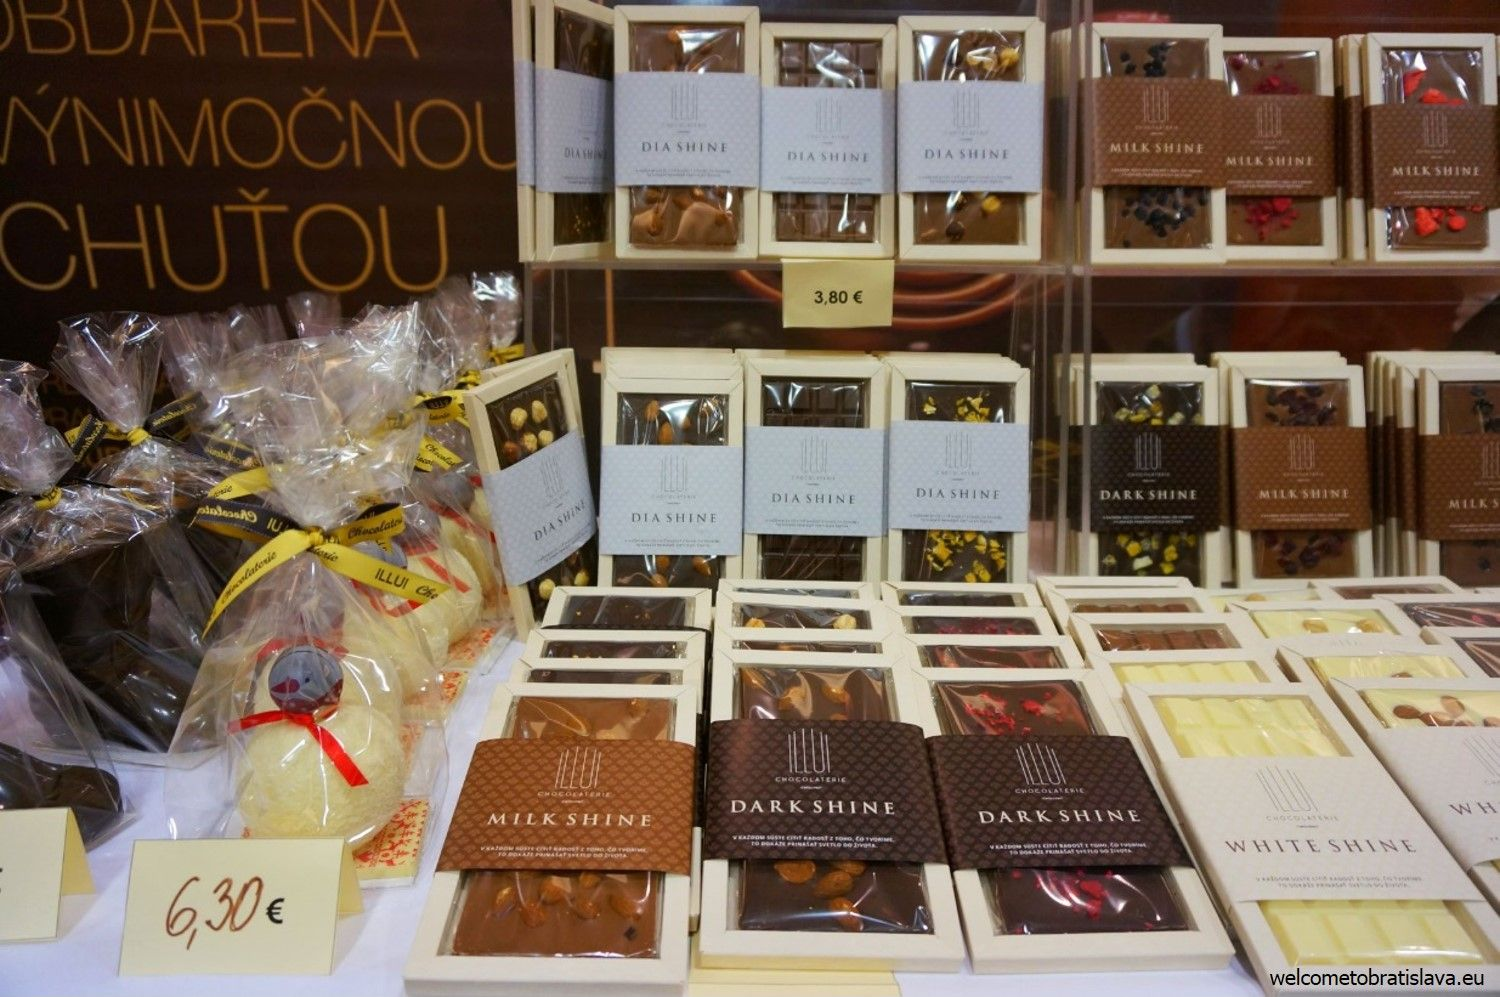 Chocolates and truffles of various flavors